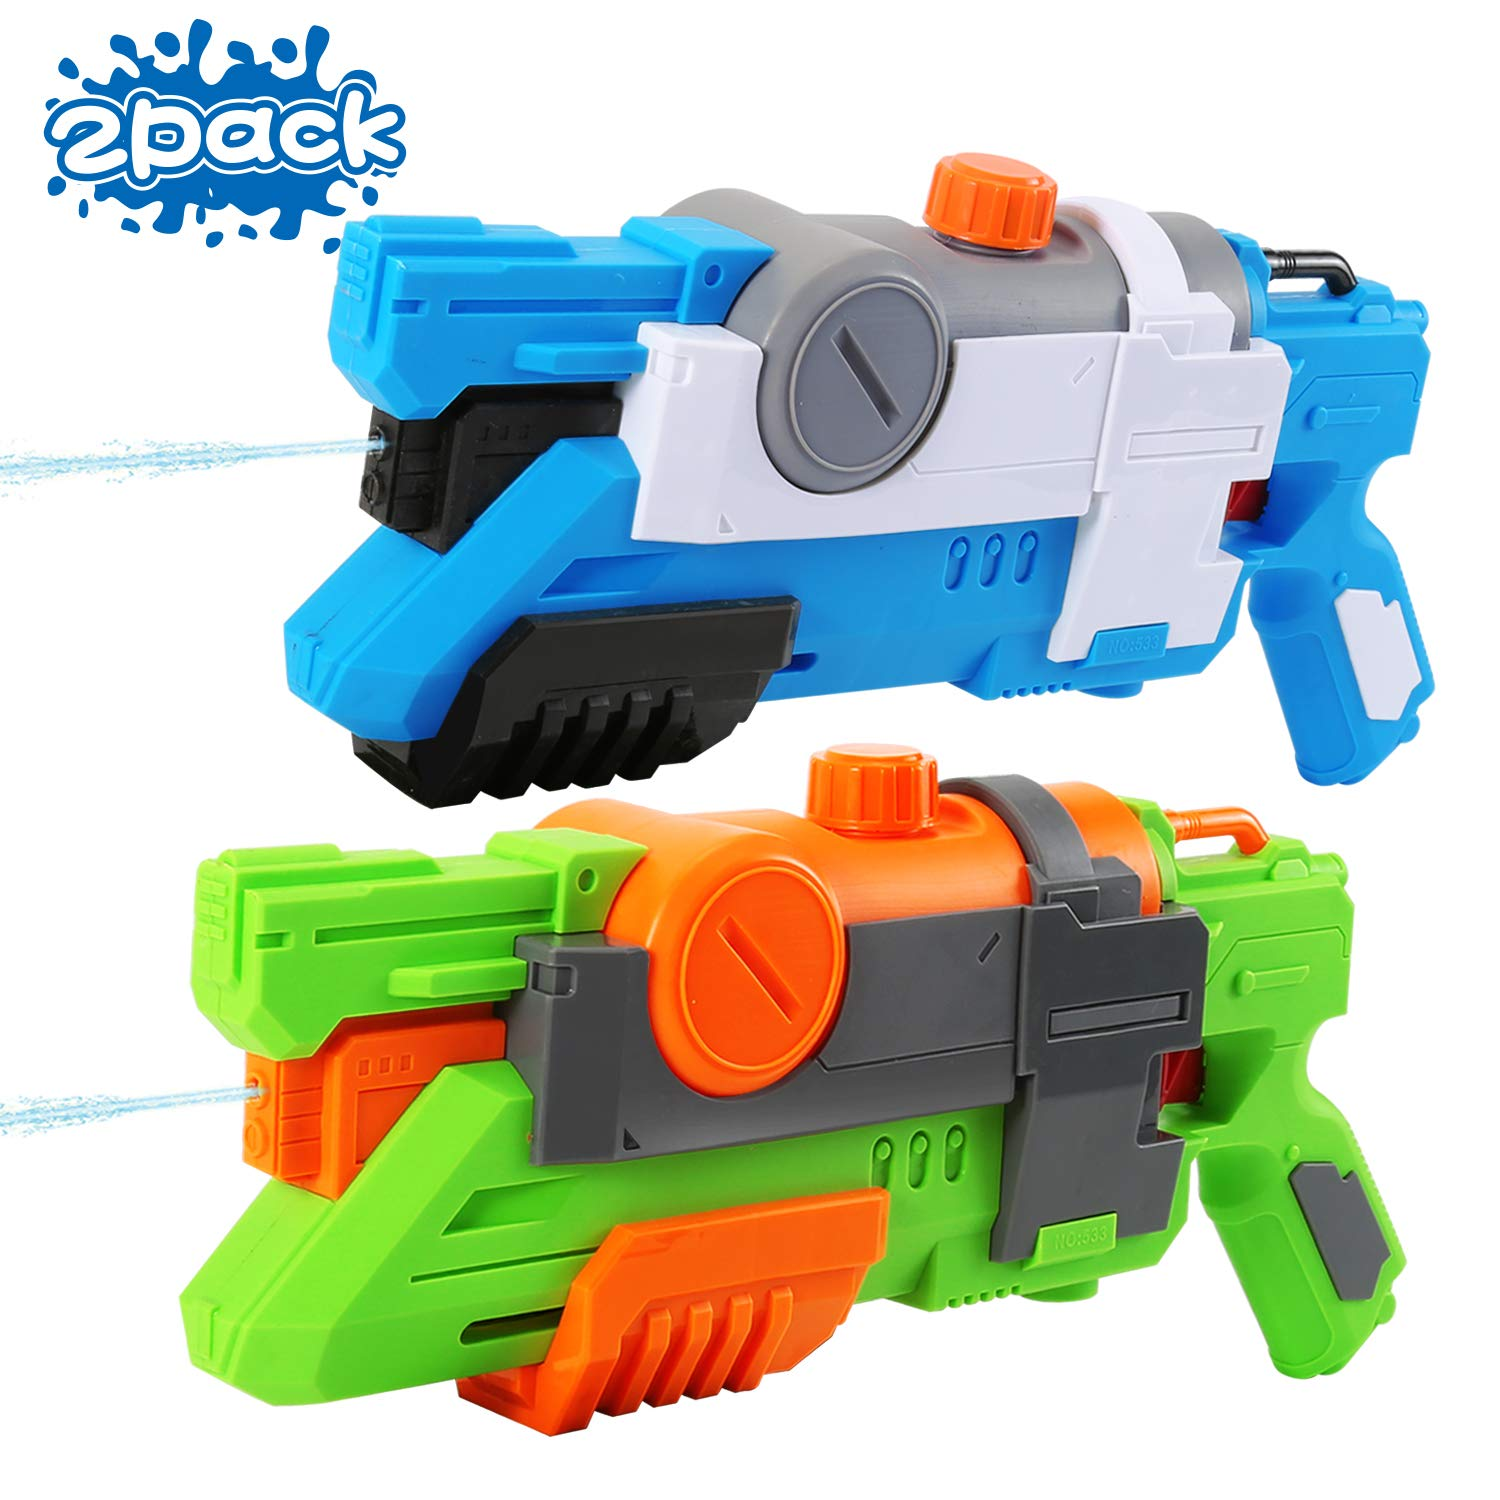 NOVCOLXYA Super Soaker Water Gun, 2 Pack Super Water Guns Water Blaster, 880cc/30oz High Capacity Water Soaker Blaster Squirt Guns for Kids Adults Swimming Pool Party Outdoor Beach Water Fighting